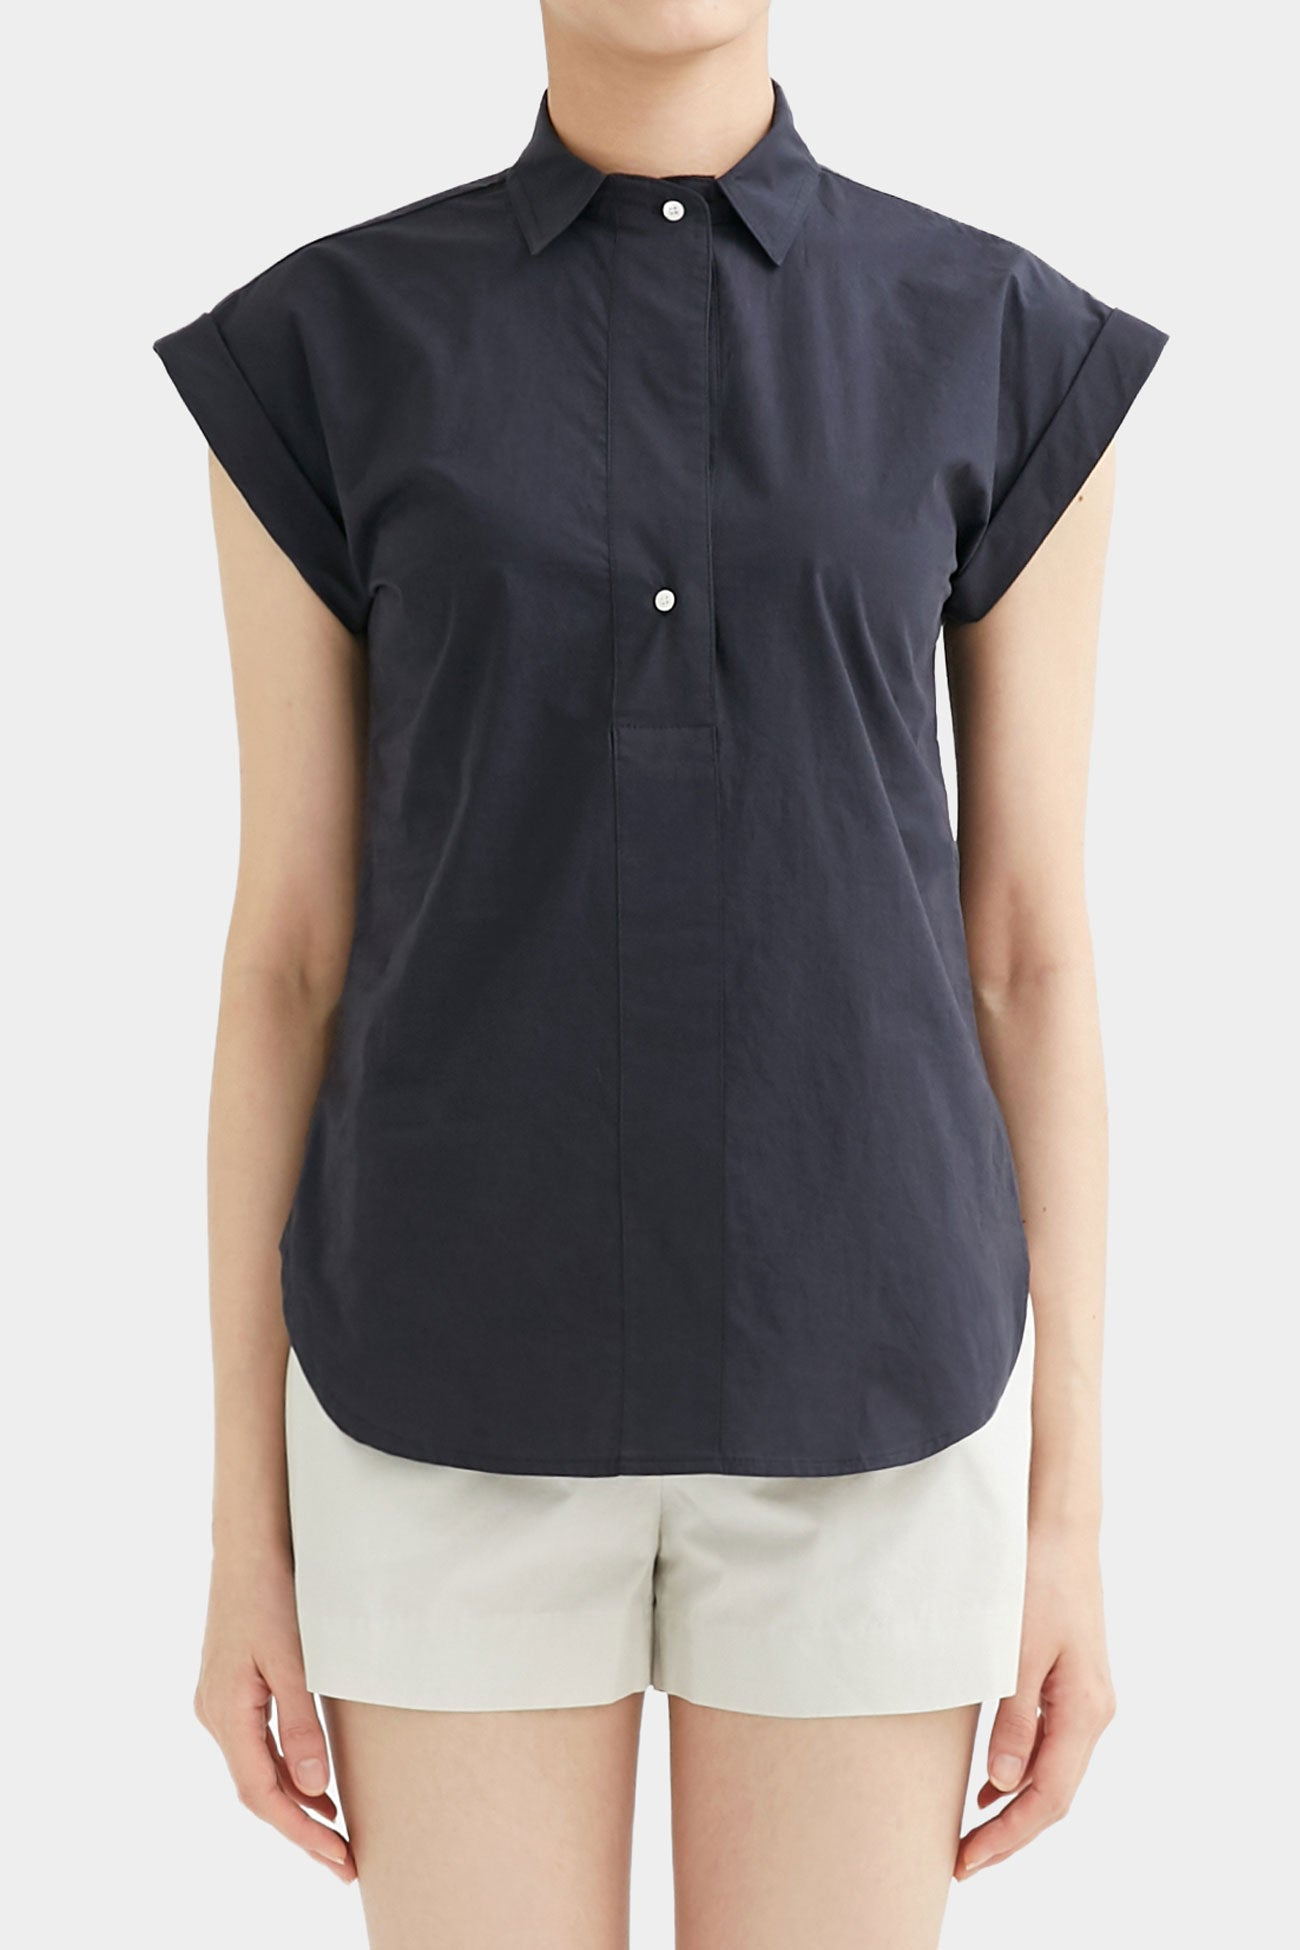 NAVY HEATHER SHORTSLEEVE SHIRTS